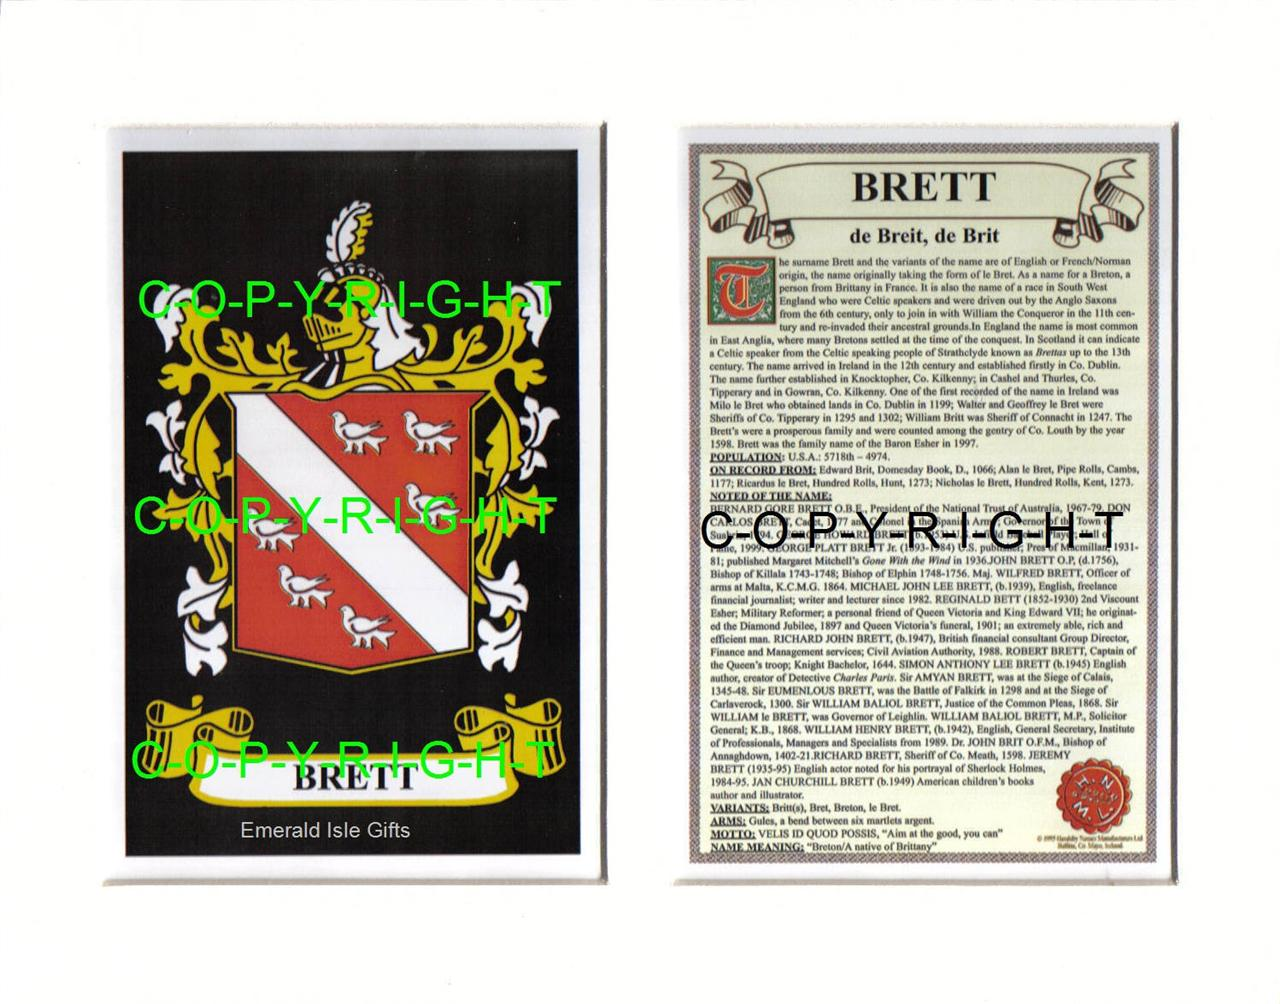 BRETT-Family-Coat-of-Arms-Crest-History-Available-Mounted-or-Framed